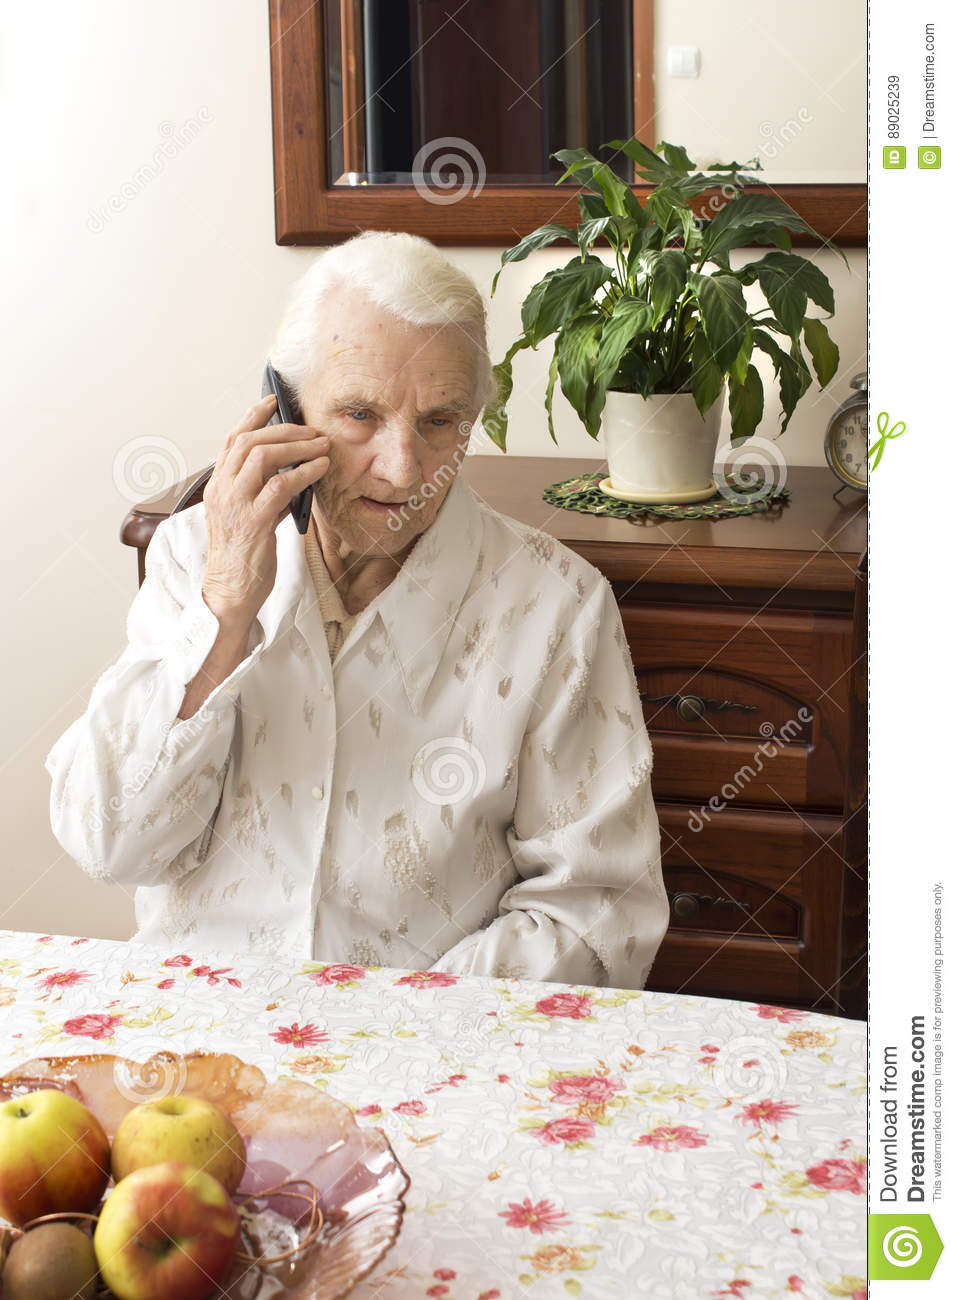 The old lady talking on a cell phone while sitting at a table in the living room.